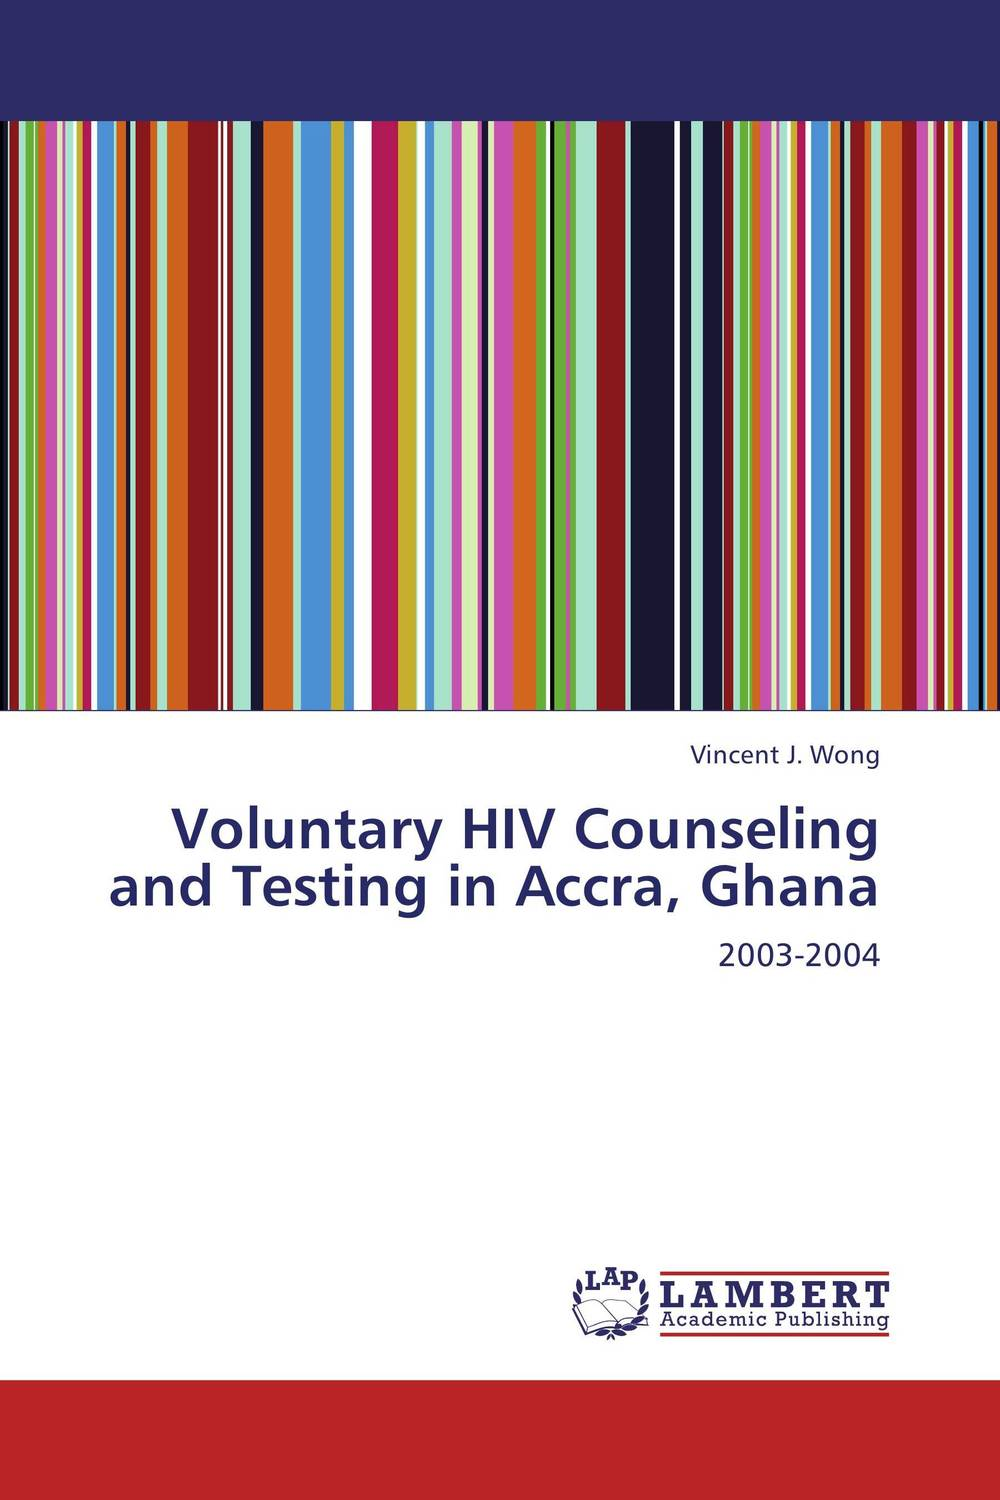 Voluntary HIV Counseling and Testing in Accra, Ghana manuscript found in accra